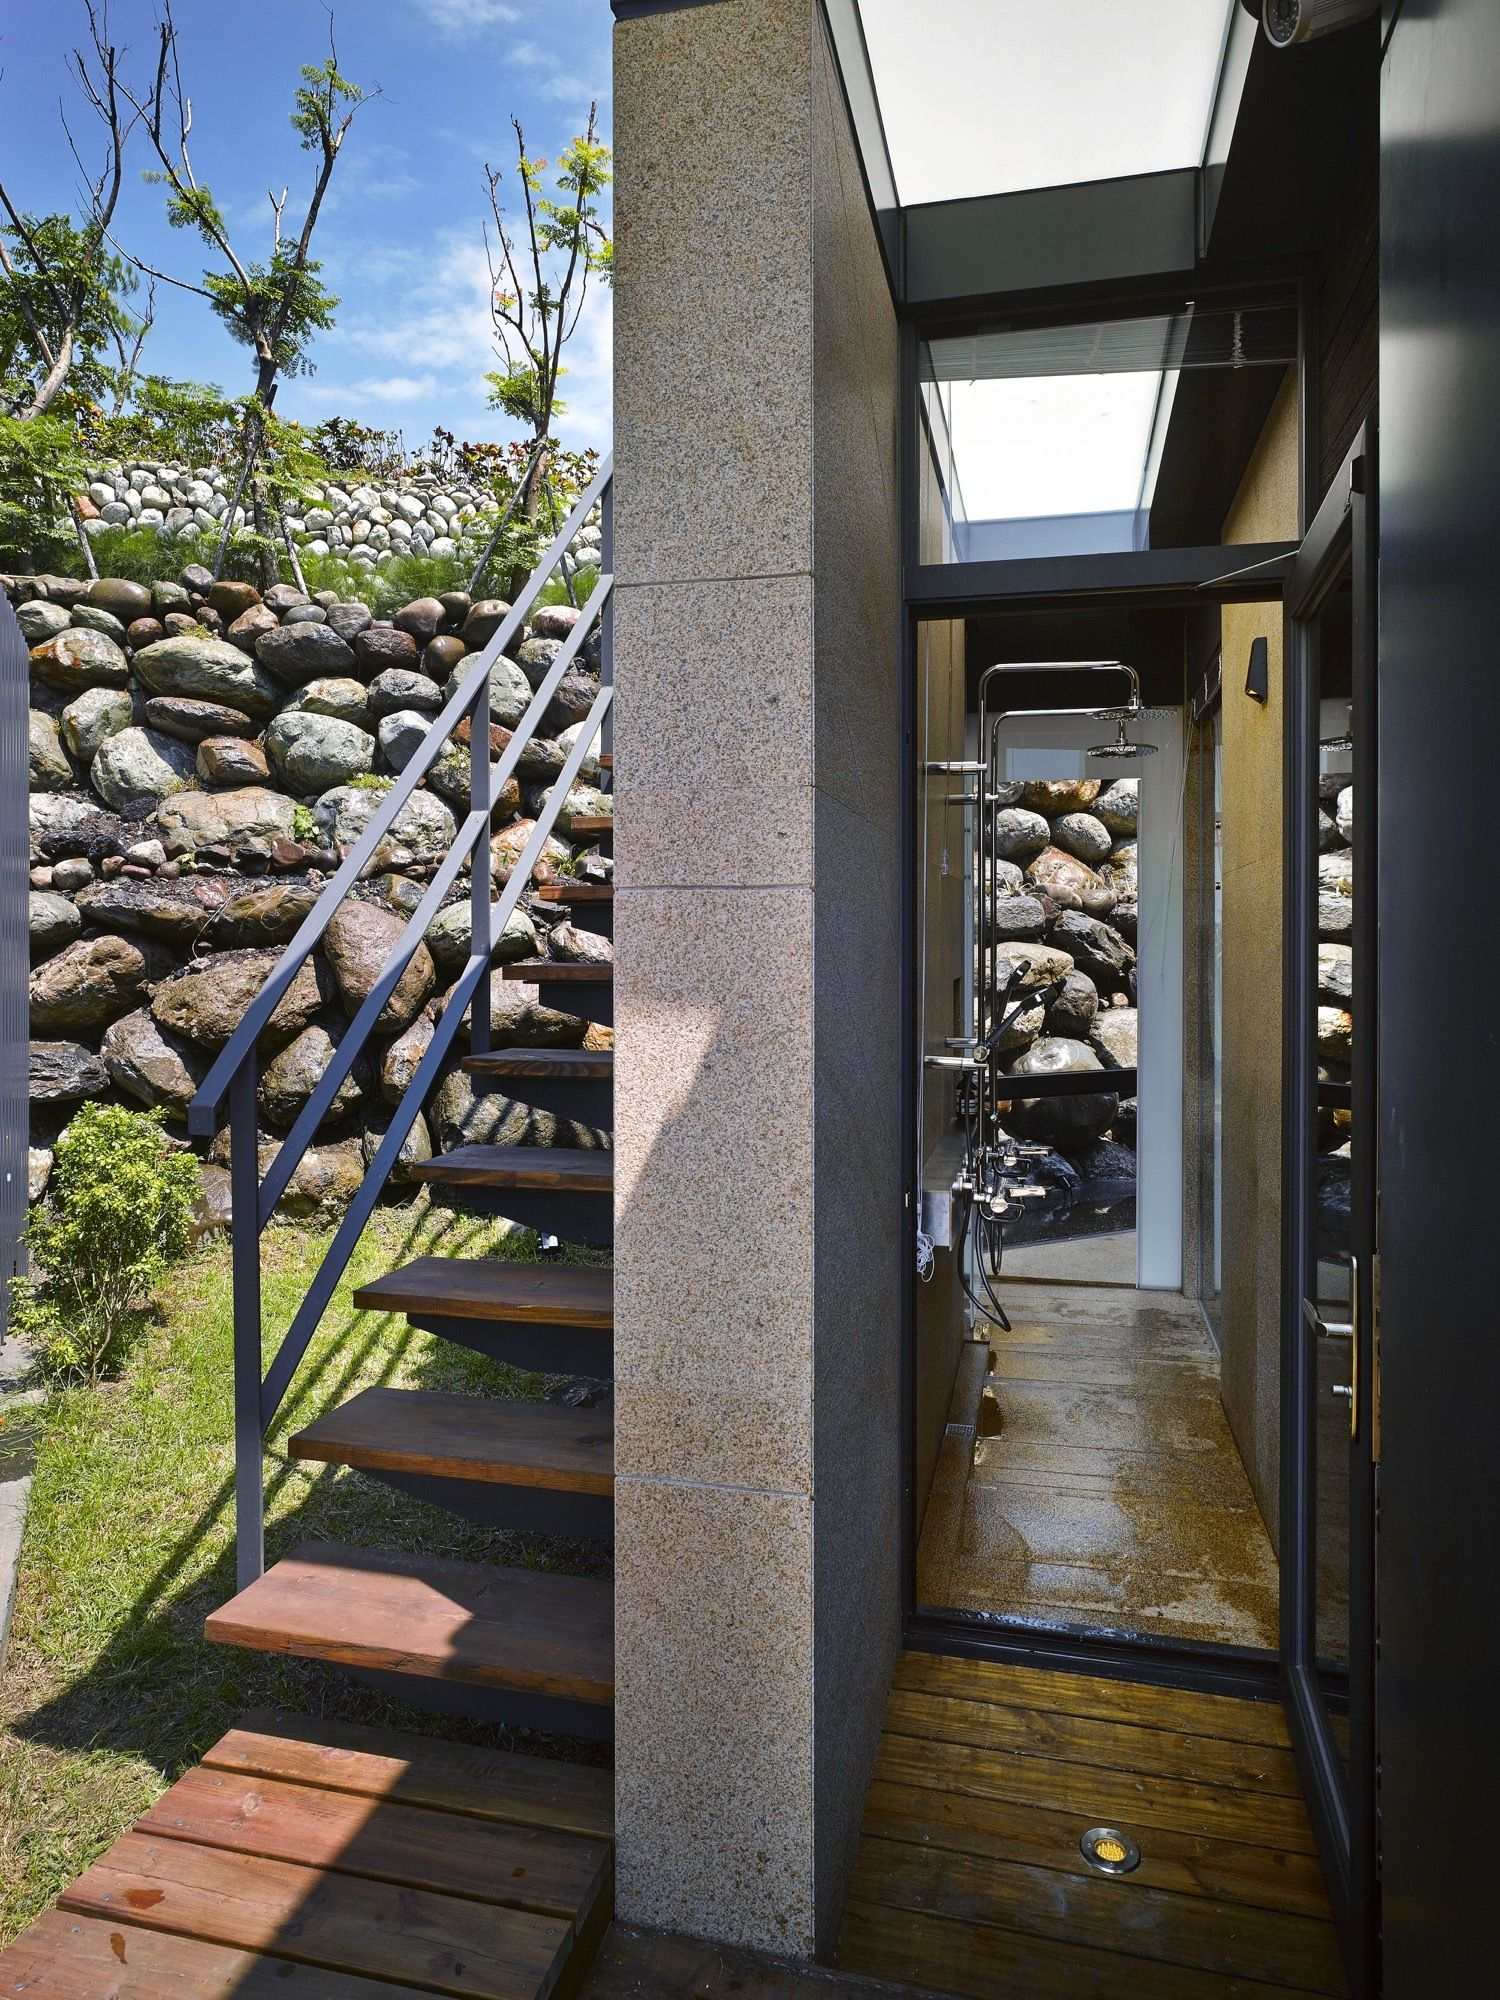 A'tolan house in Taiwan staircase